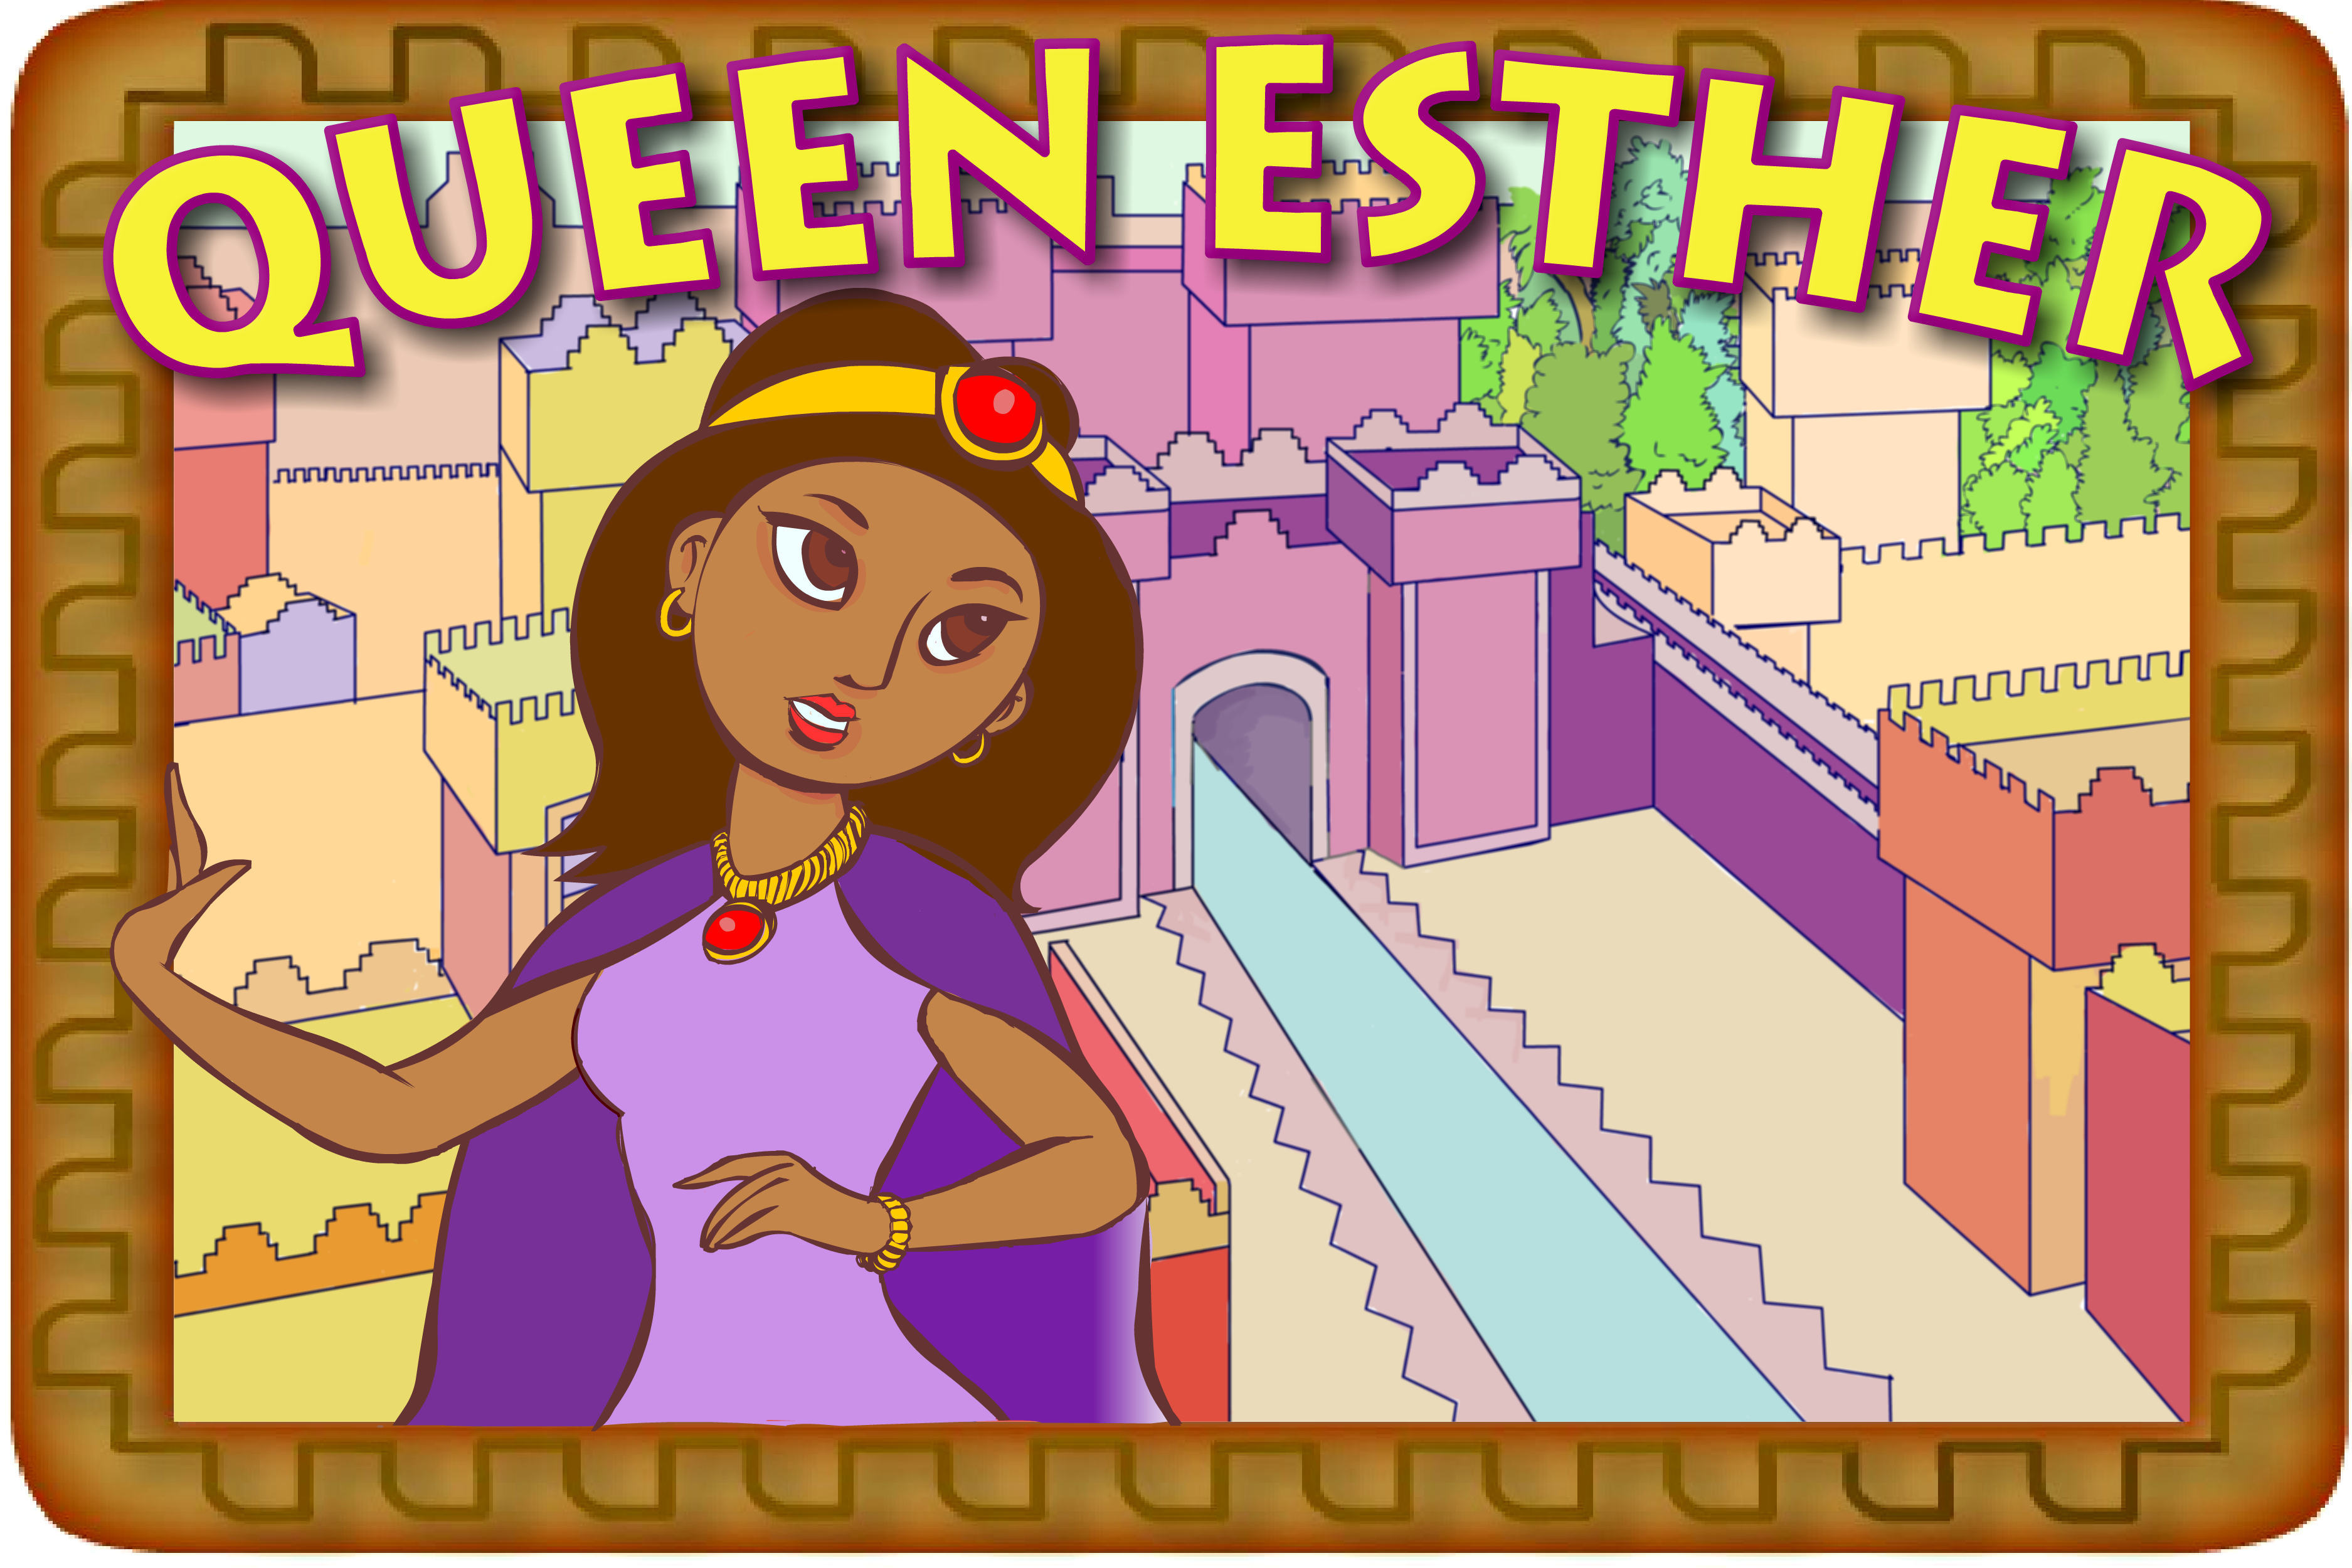 Purim clipart megillat esther.  collection of high